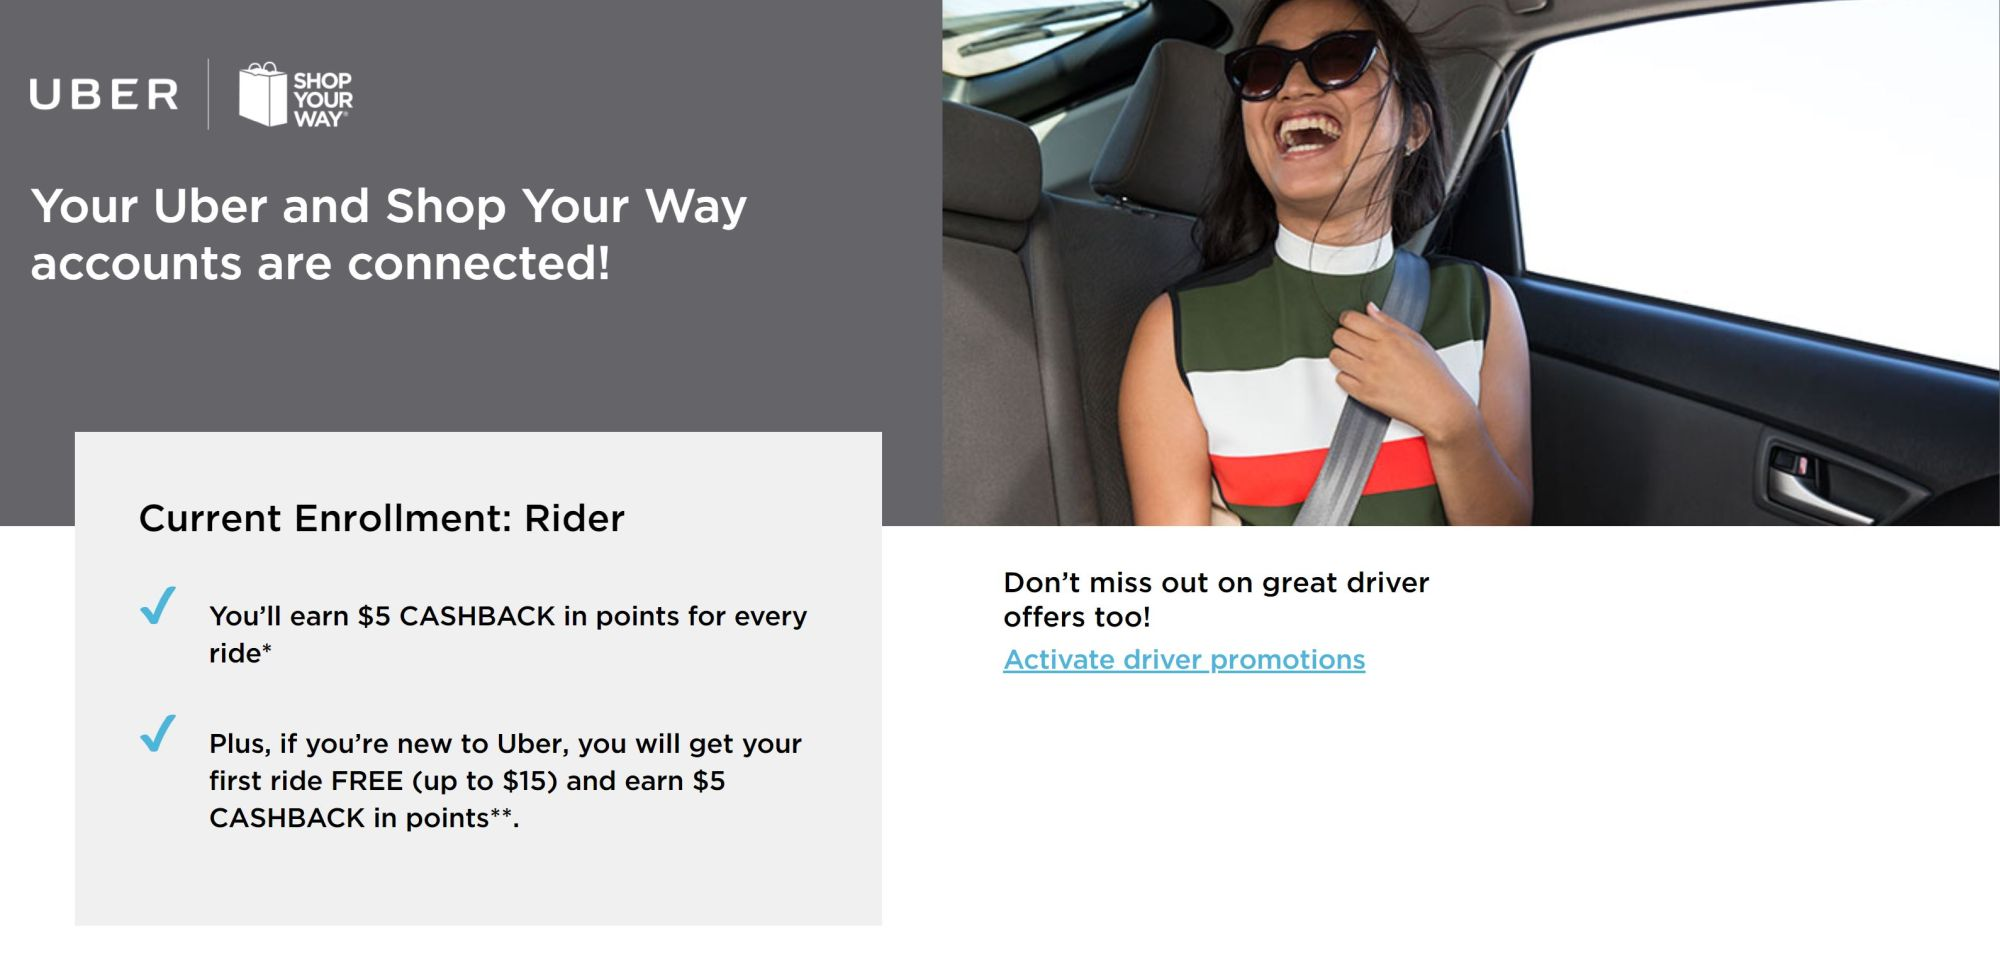 earn shopyourway rewards points with uber this weekend 5 per ride - Uber Fuel Rewards Card Activation